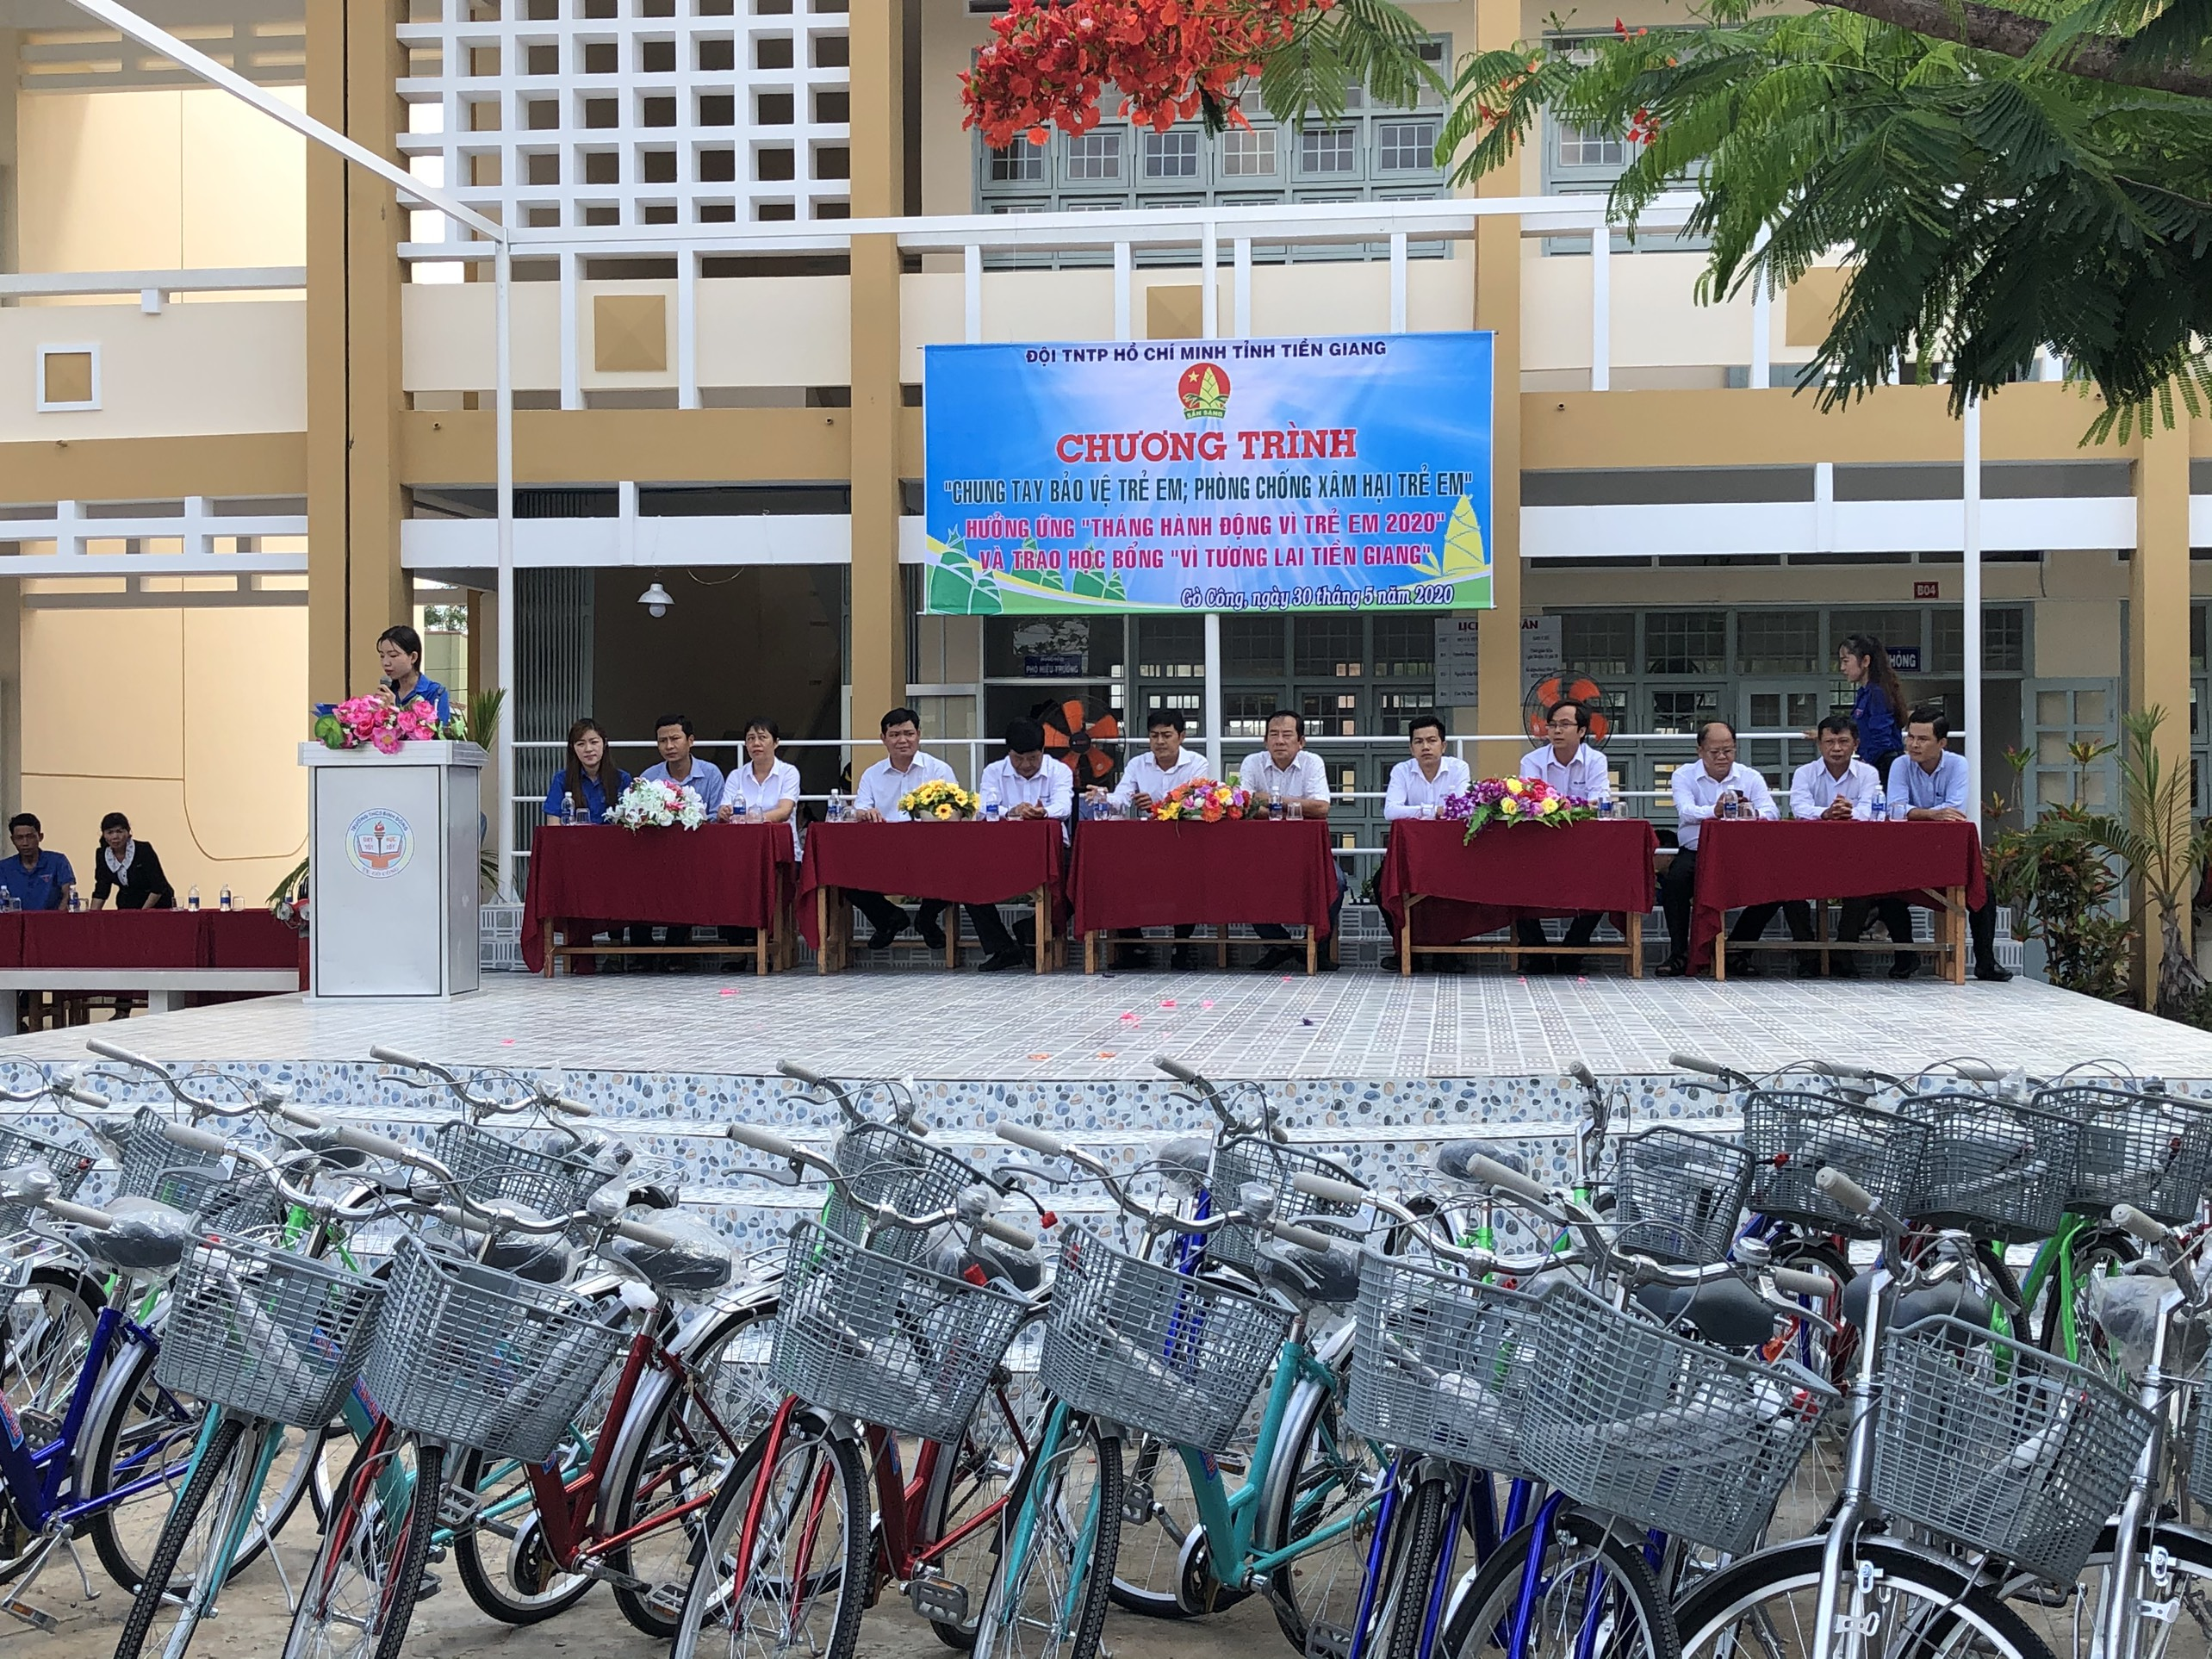 100 BIKES WERE DONATED TO POOR PUPILS IN BINH DONG SECONDARY SCHOOL, TIEN GIANG PROVINCE